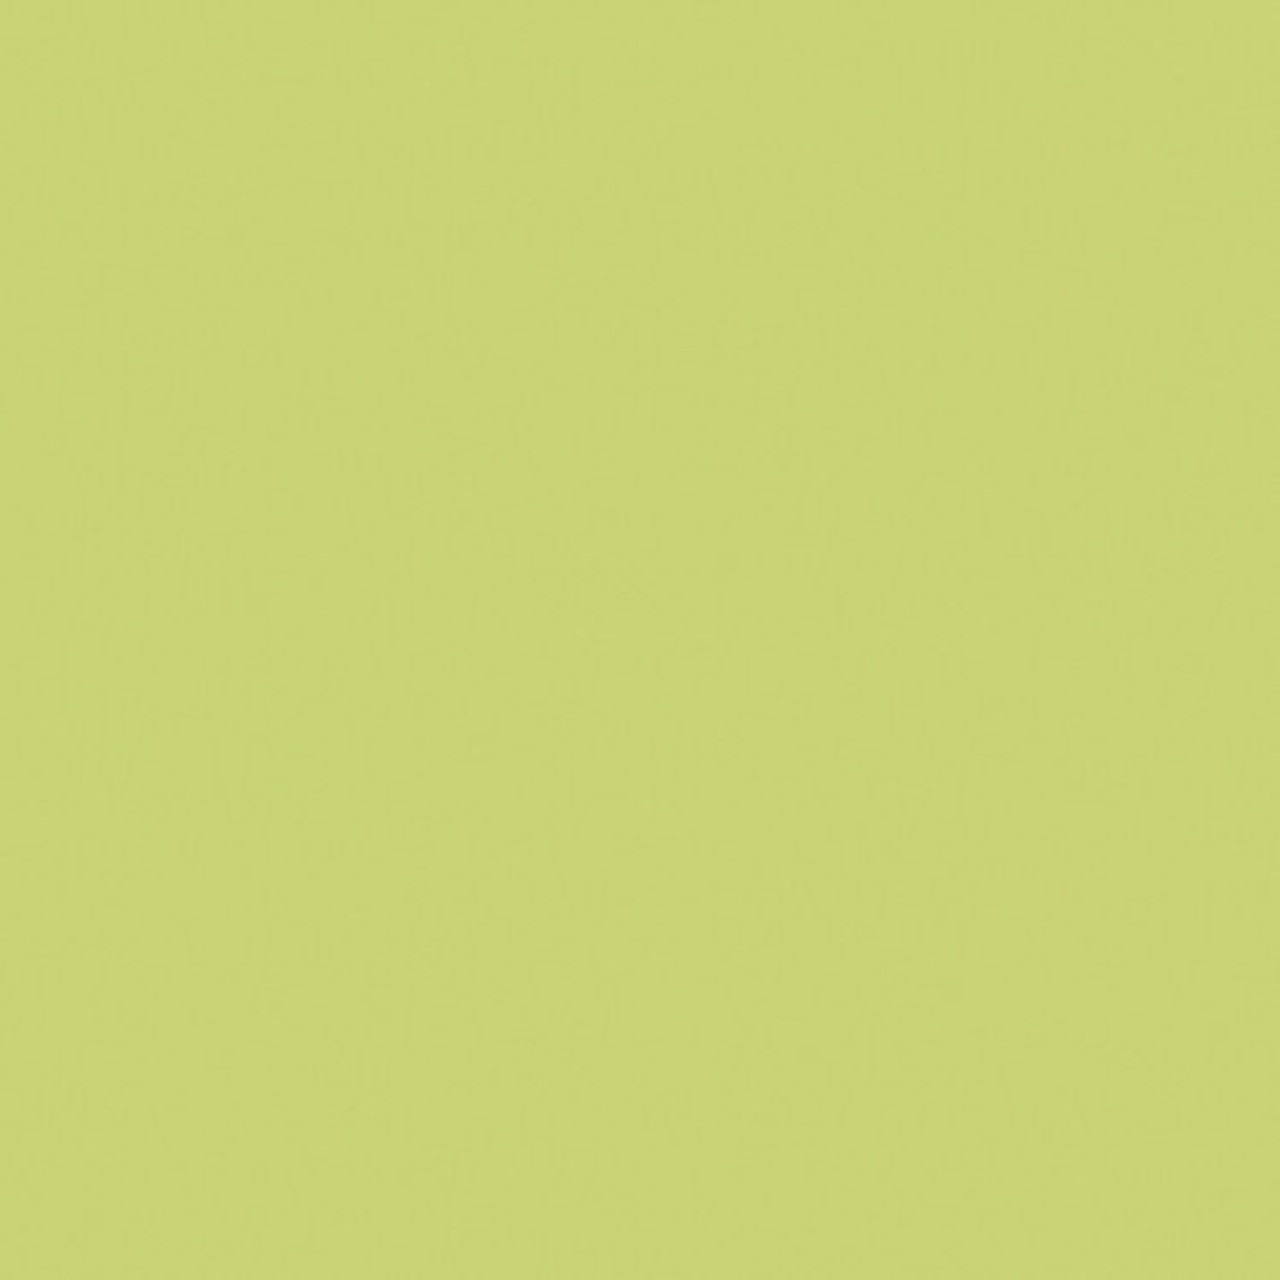 #0388 Rosco Gels Roscolux Gaslight Green, 20x24""